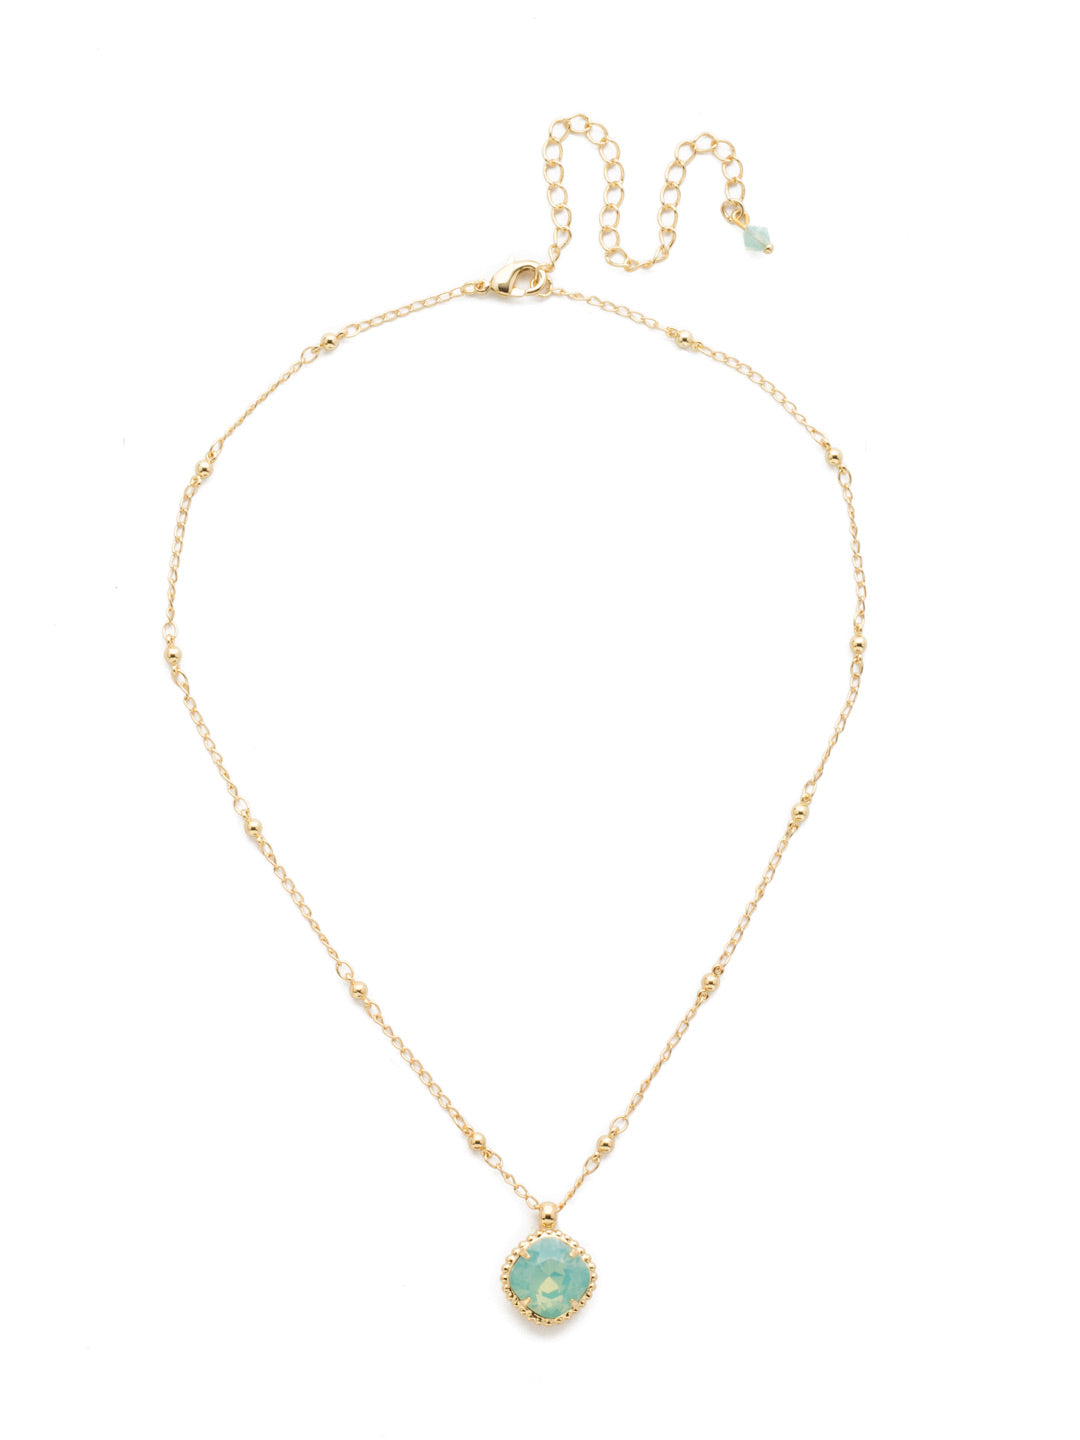 Cushion-Cut Solitaire Necklace - Sorrelli Essentials - NDS50BGPAC